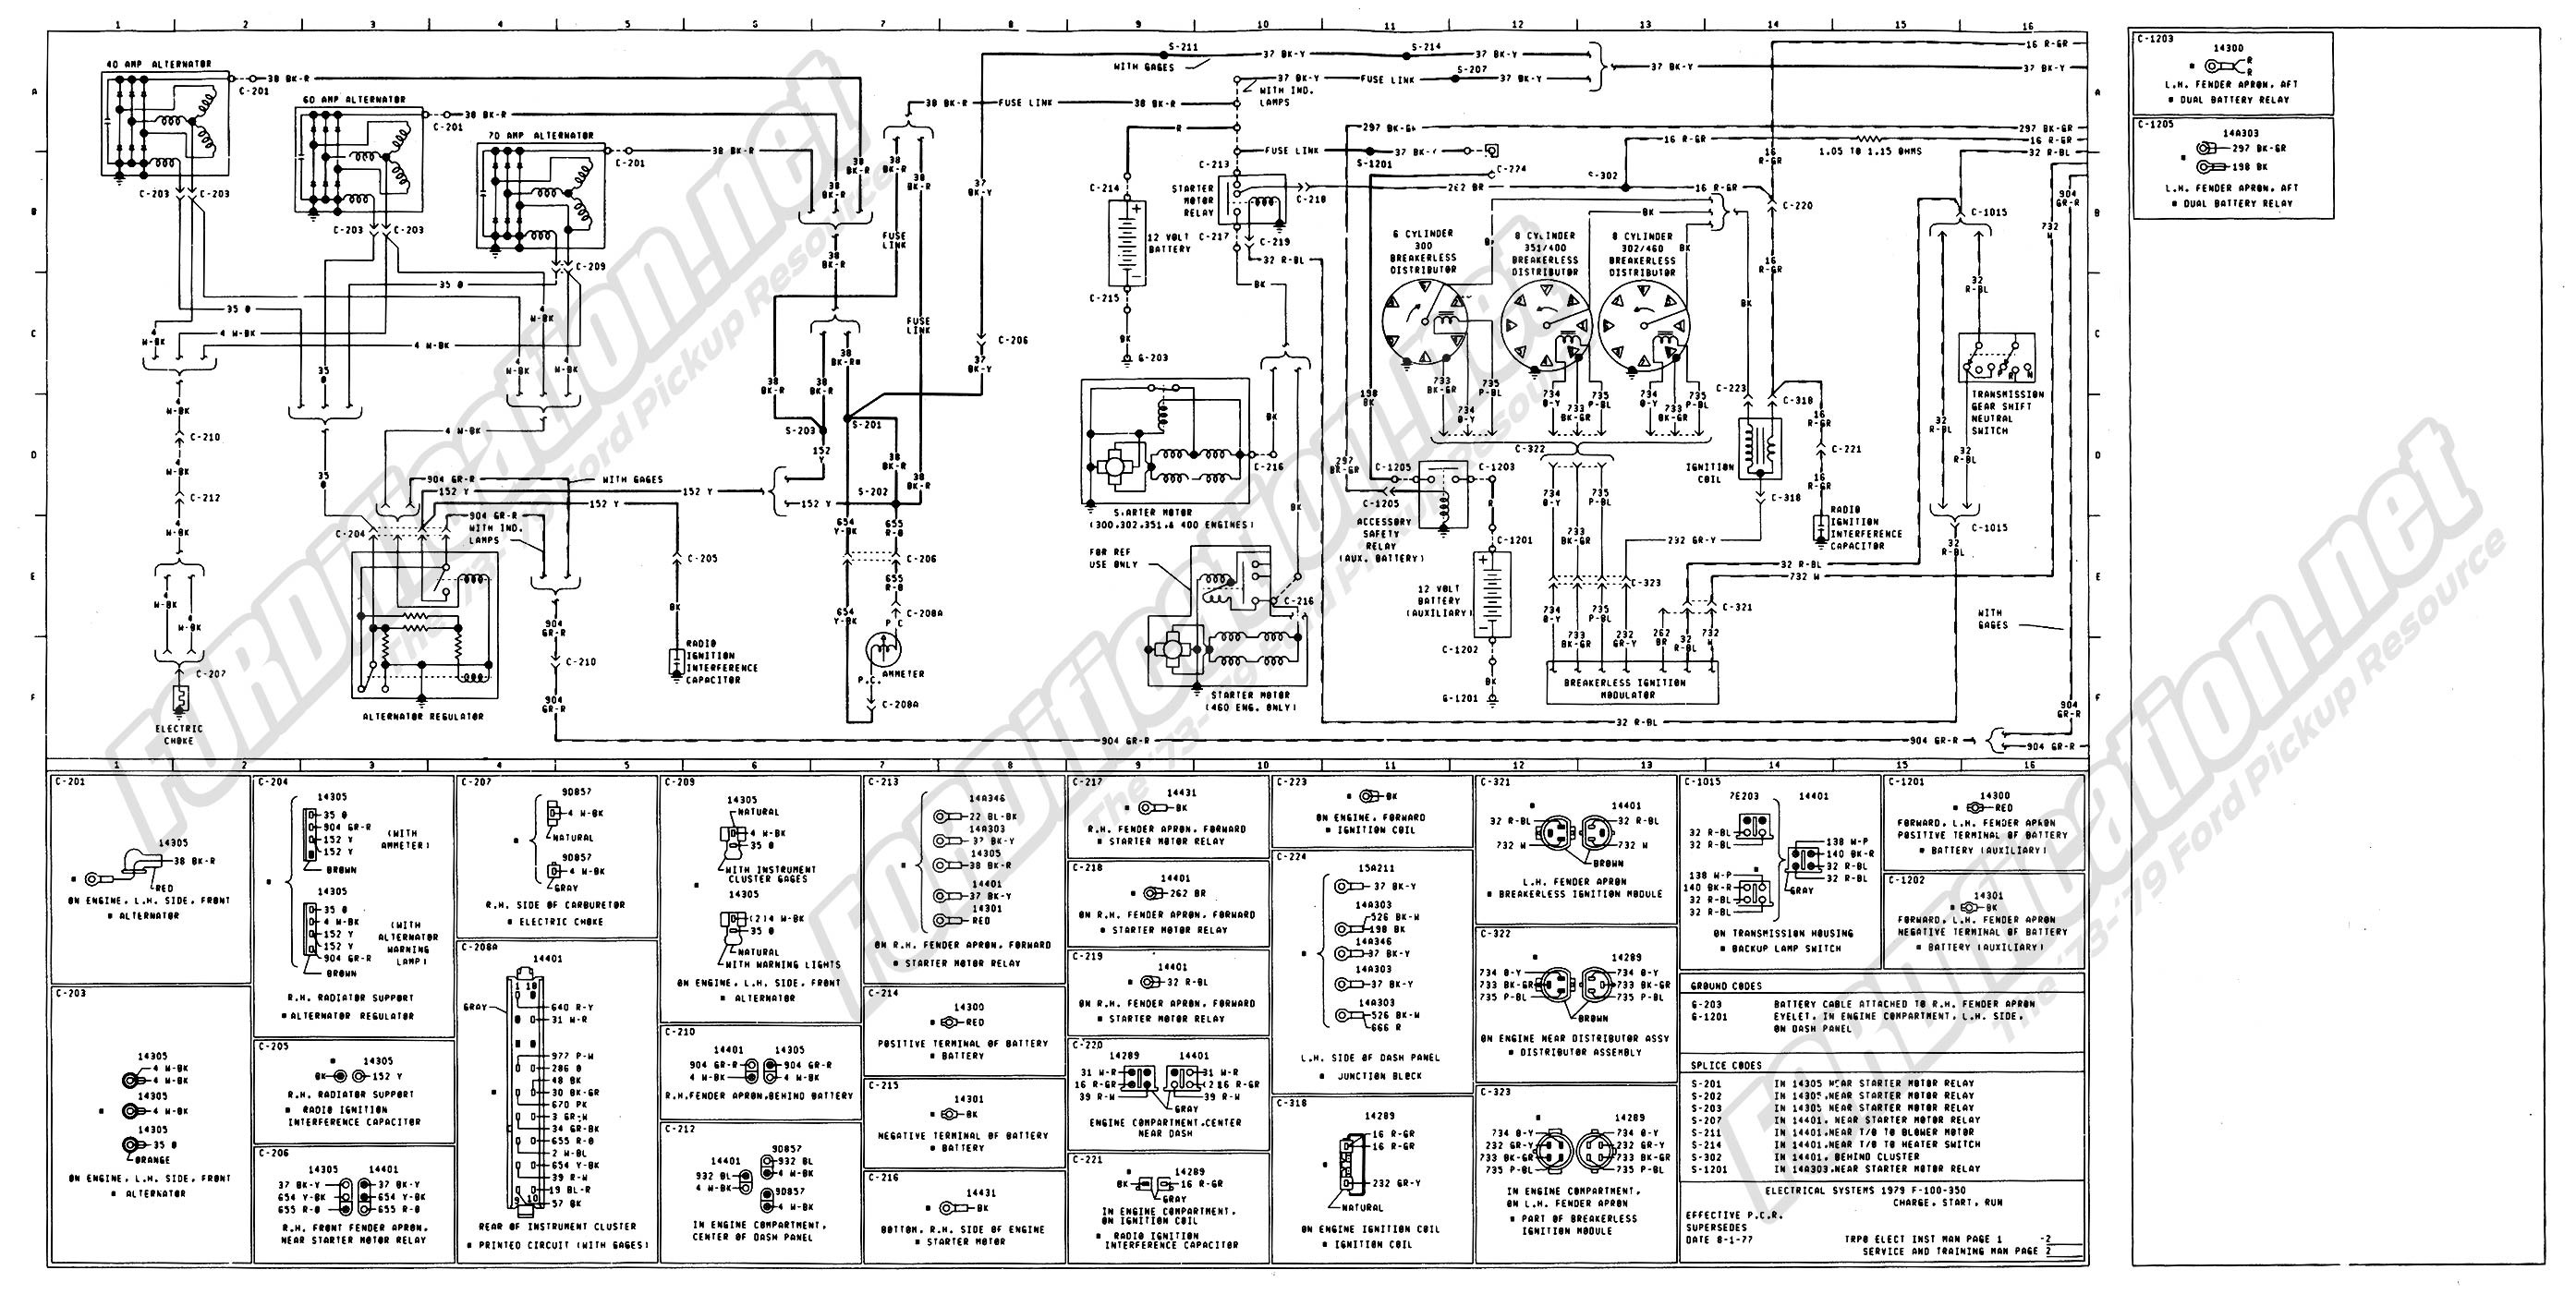 Ford F 250 6 0 Engine Diagram Wiring Library 2 Schematic For A C Heat 1984 F250 Diesel